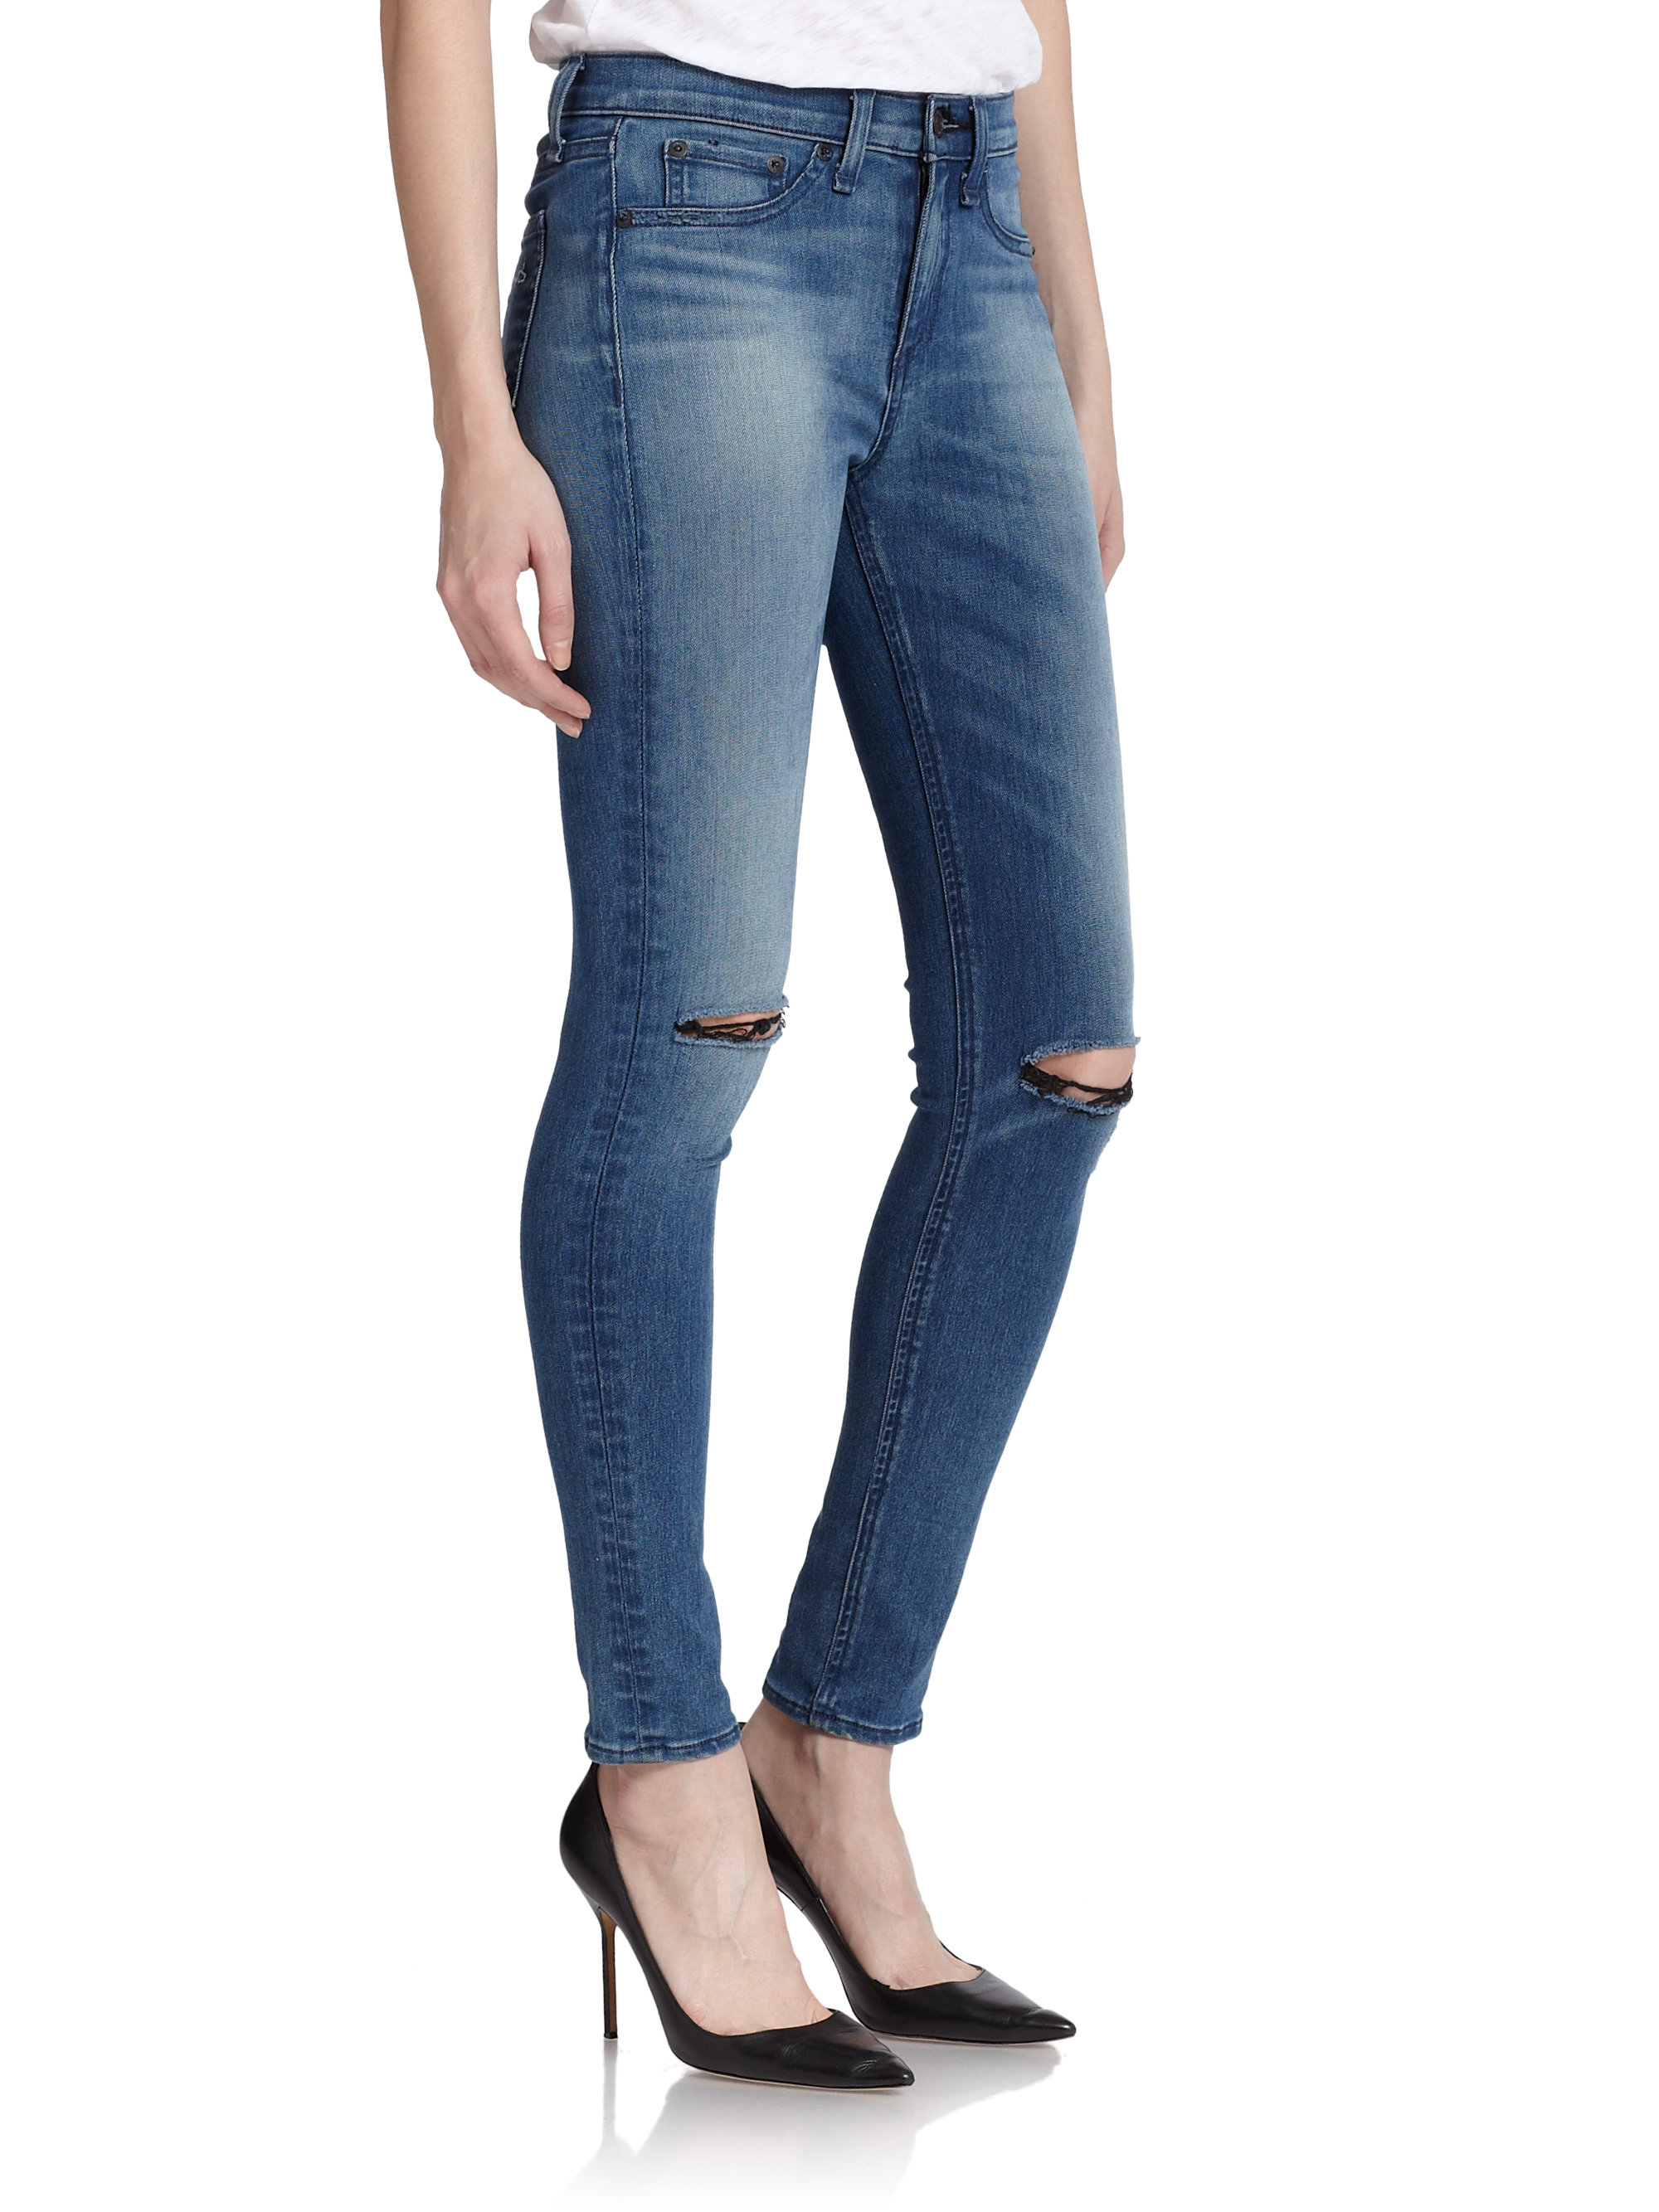 Cheap Sale New Styles Bulk Designs Rag & Bone distressed high waisted skinny jeans Free Shipping Comfortable Shop For Online Free Shipping 2018 Newest RWssd